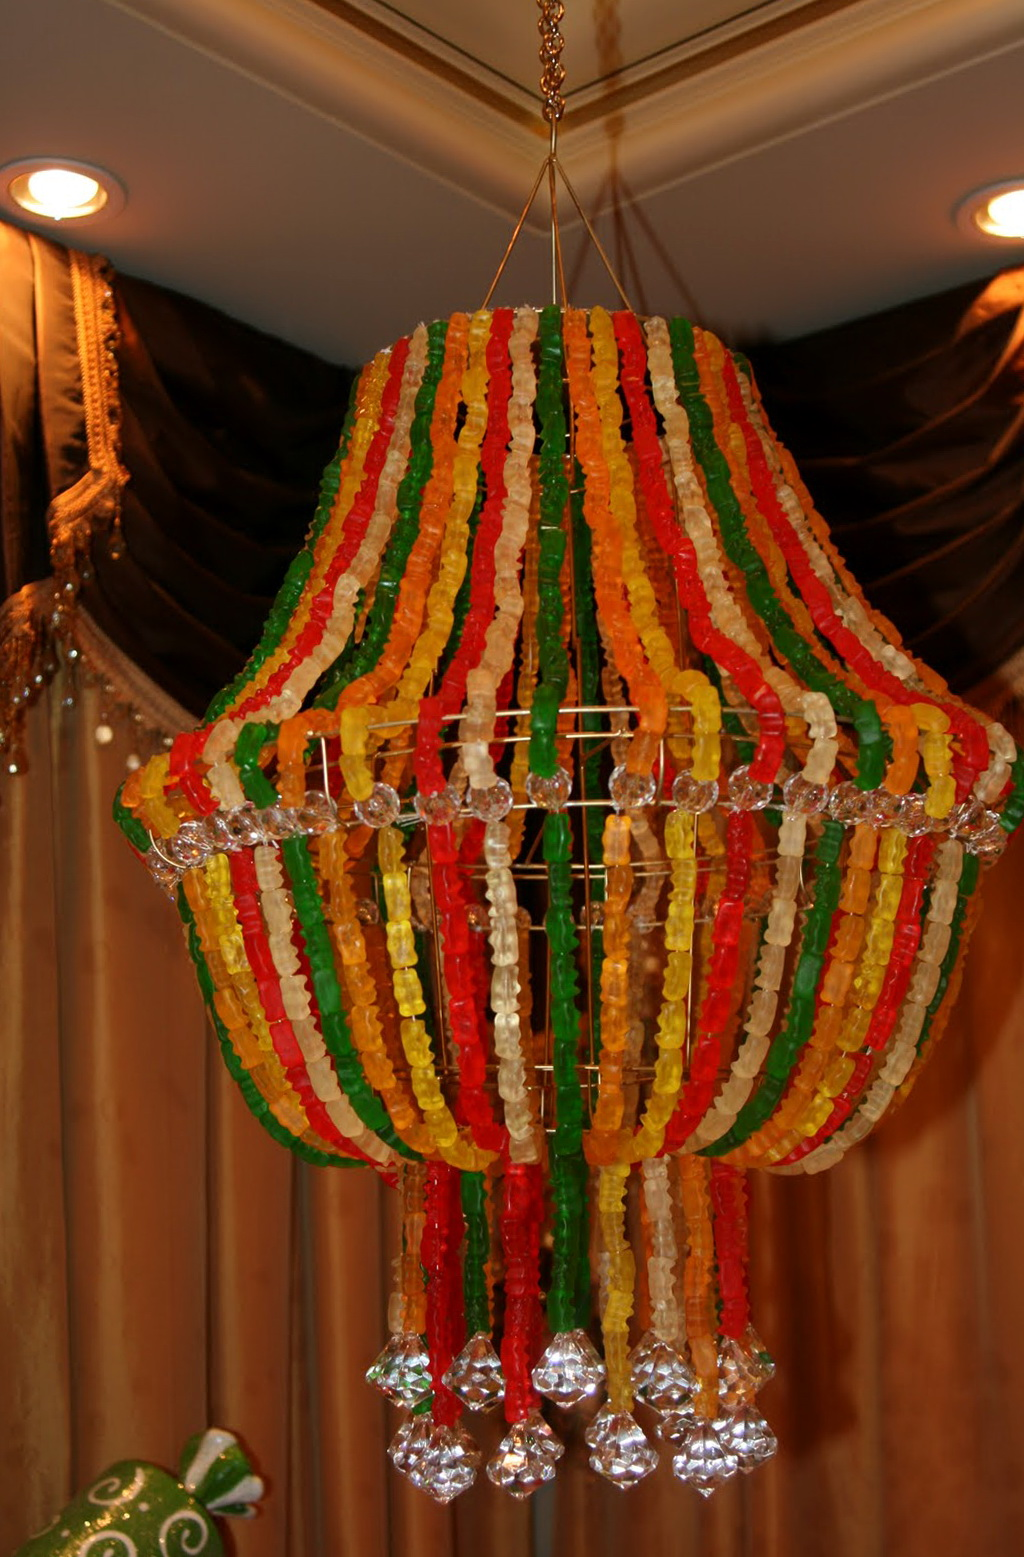 Gummy bear chandelier for sale home design ideas gummy bear chandelier for sale arubaitofo Image collections